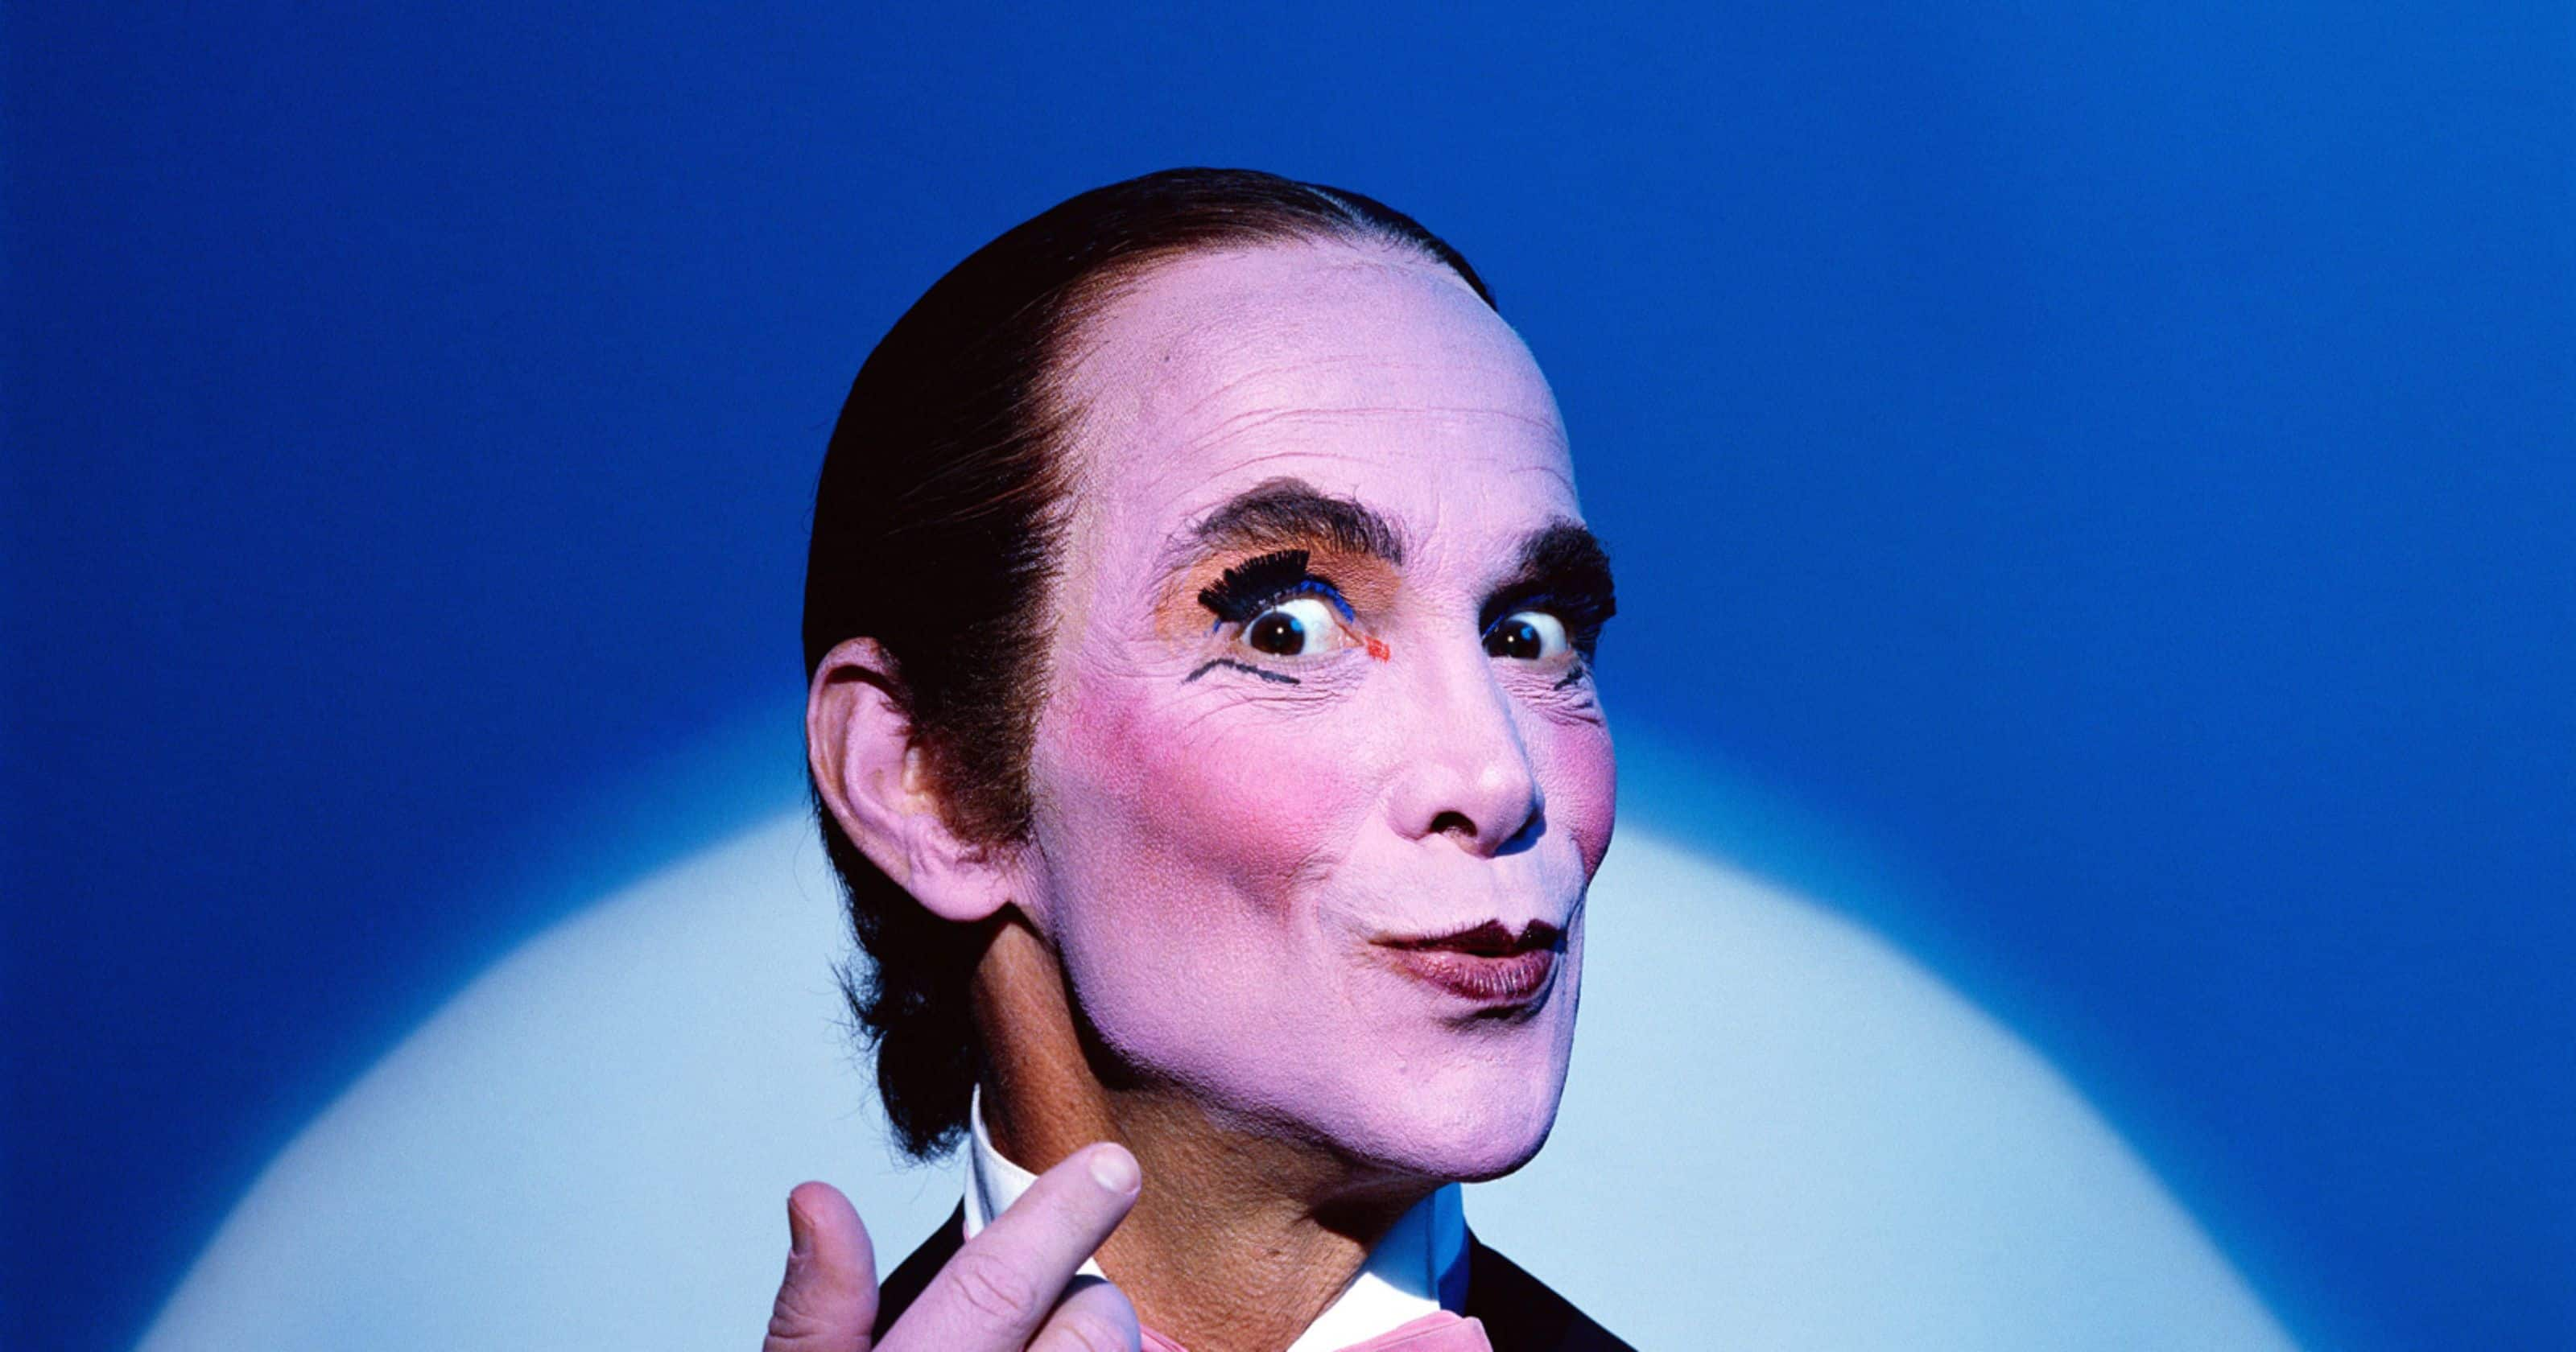 Joel Grey Full hd wallpapers